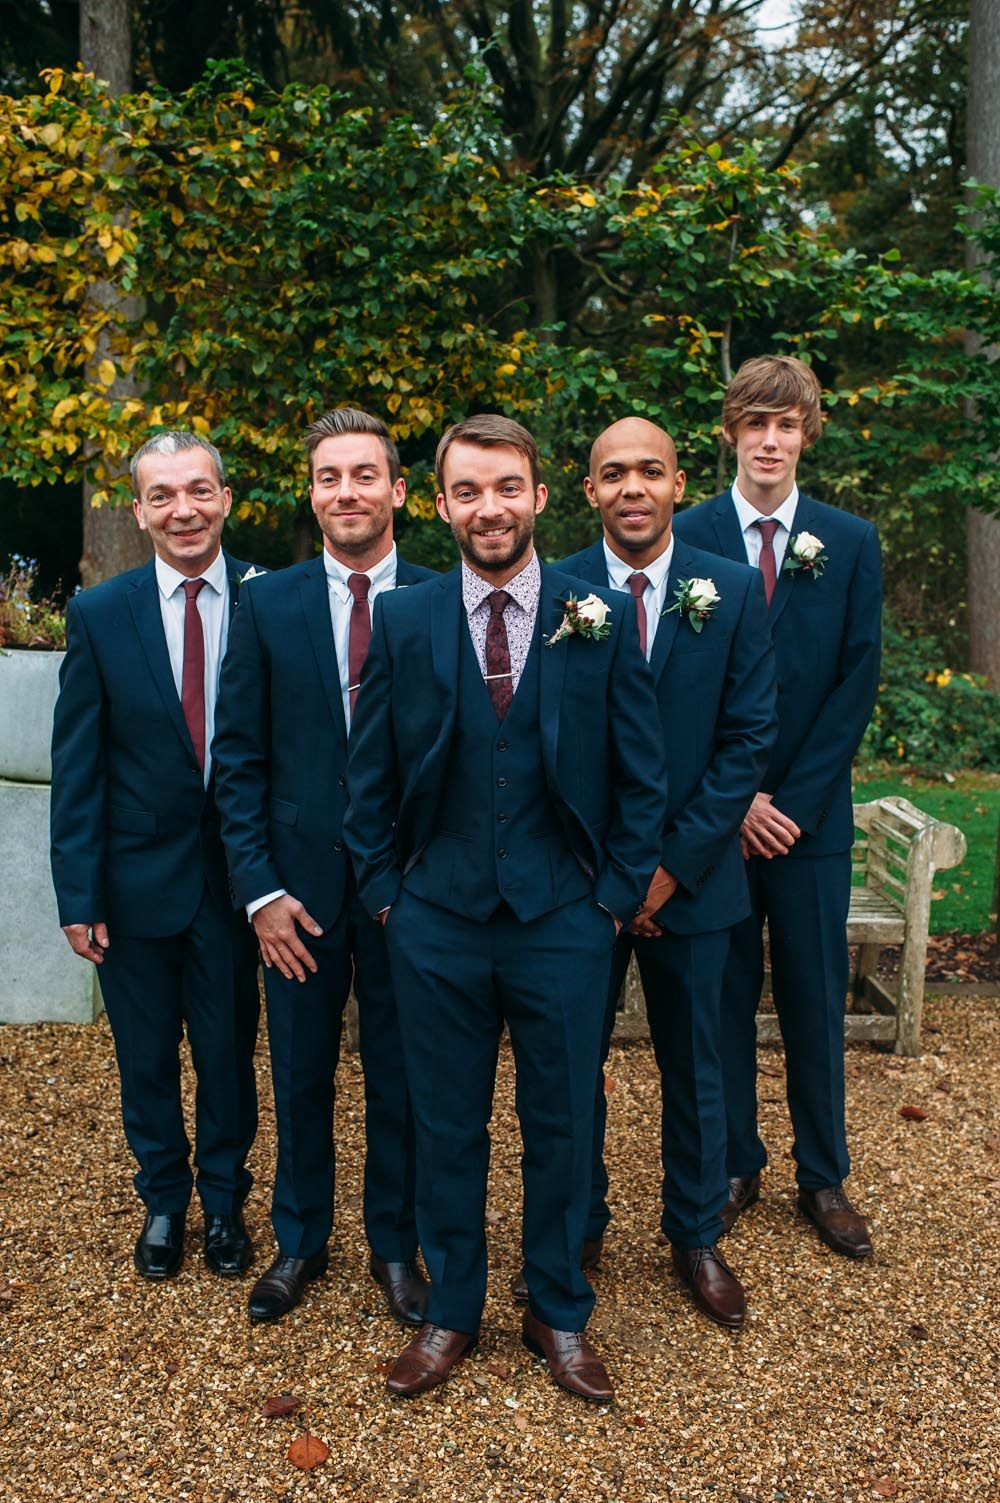 Navy Suit Wedding.Autumnal Rustic Themed Wedding With Navy Maroon Gold